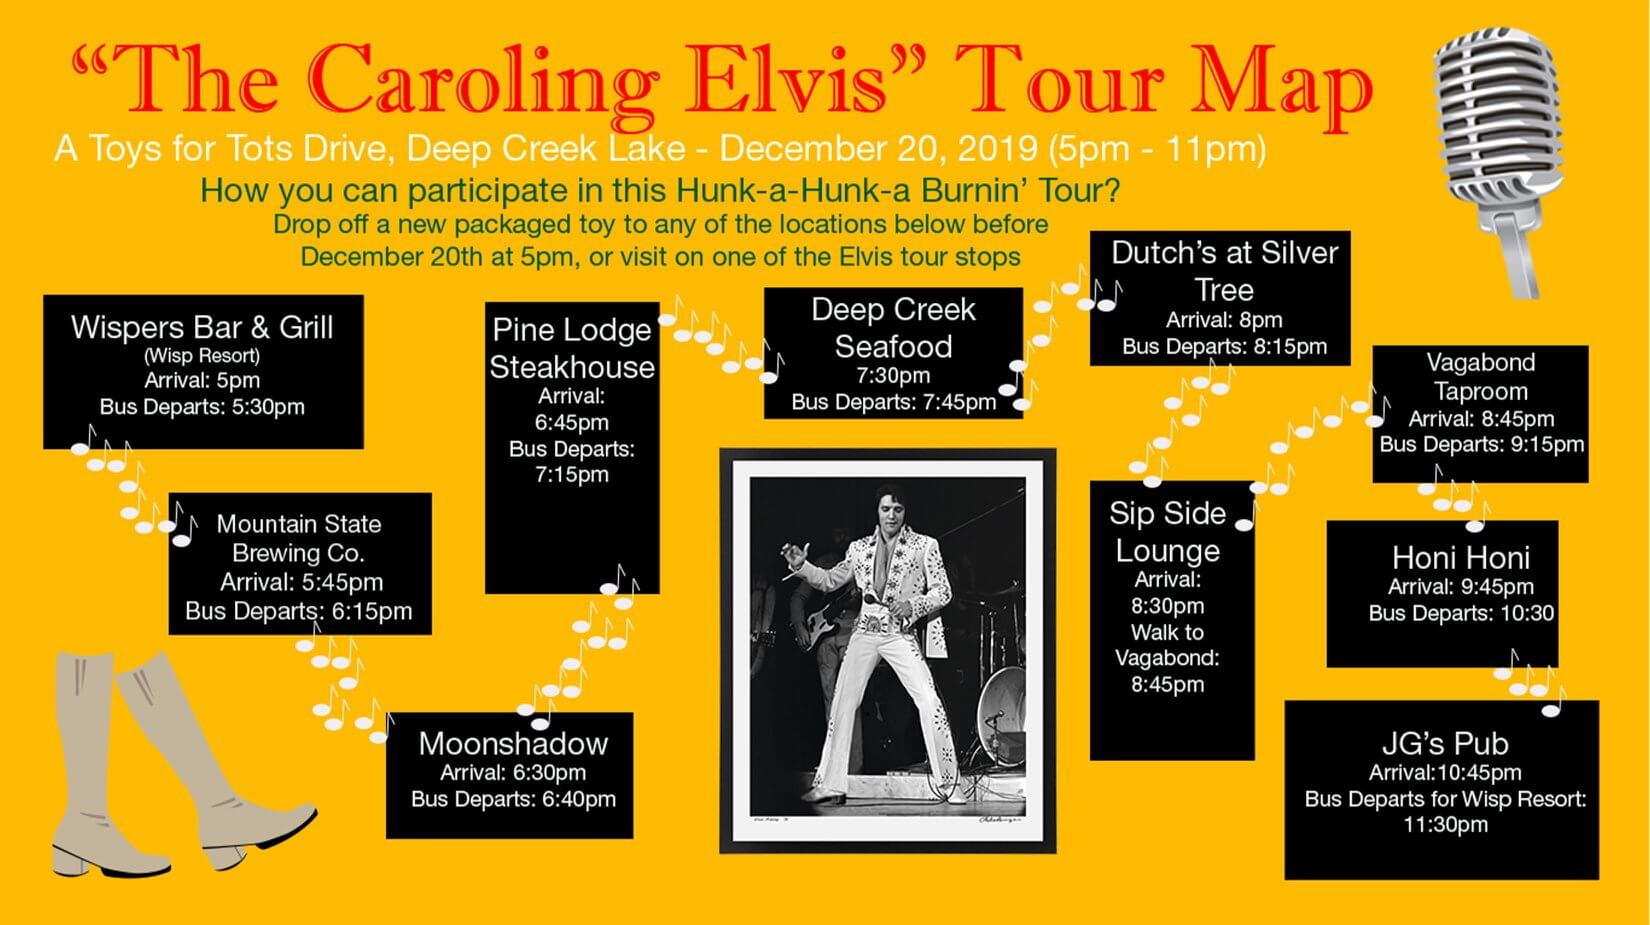 The Caroling Elvis Tour Map at Deep Creek Lake, MD